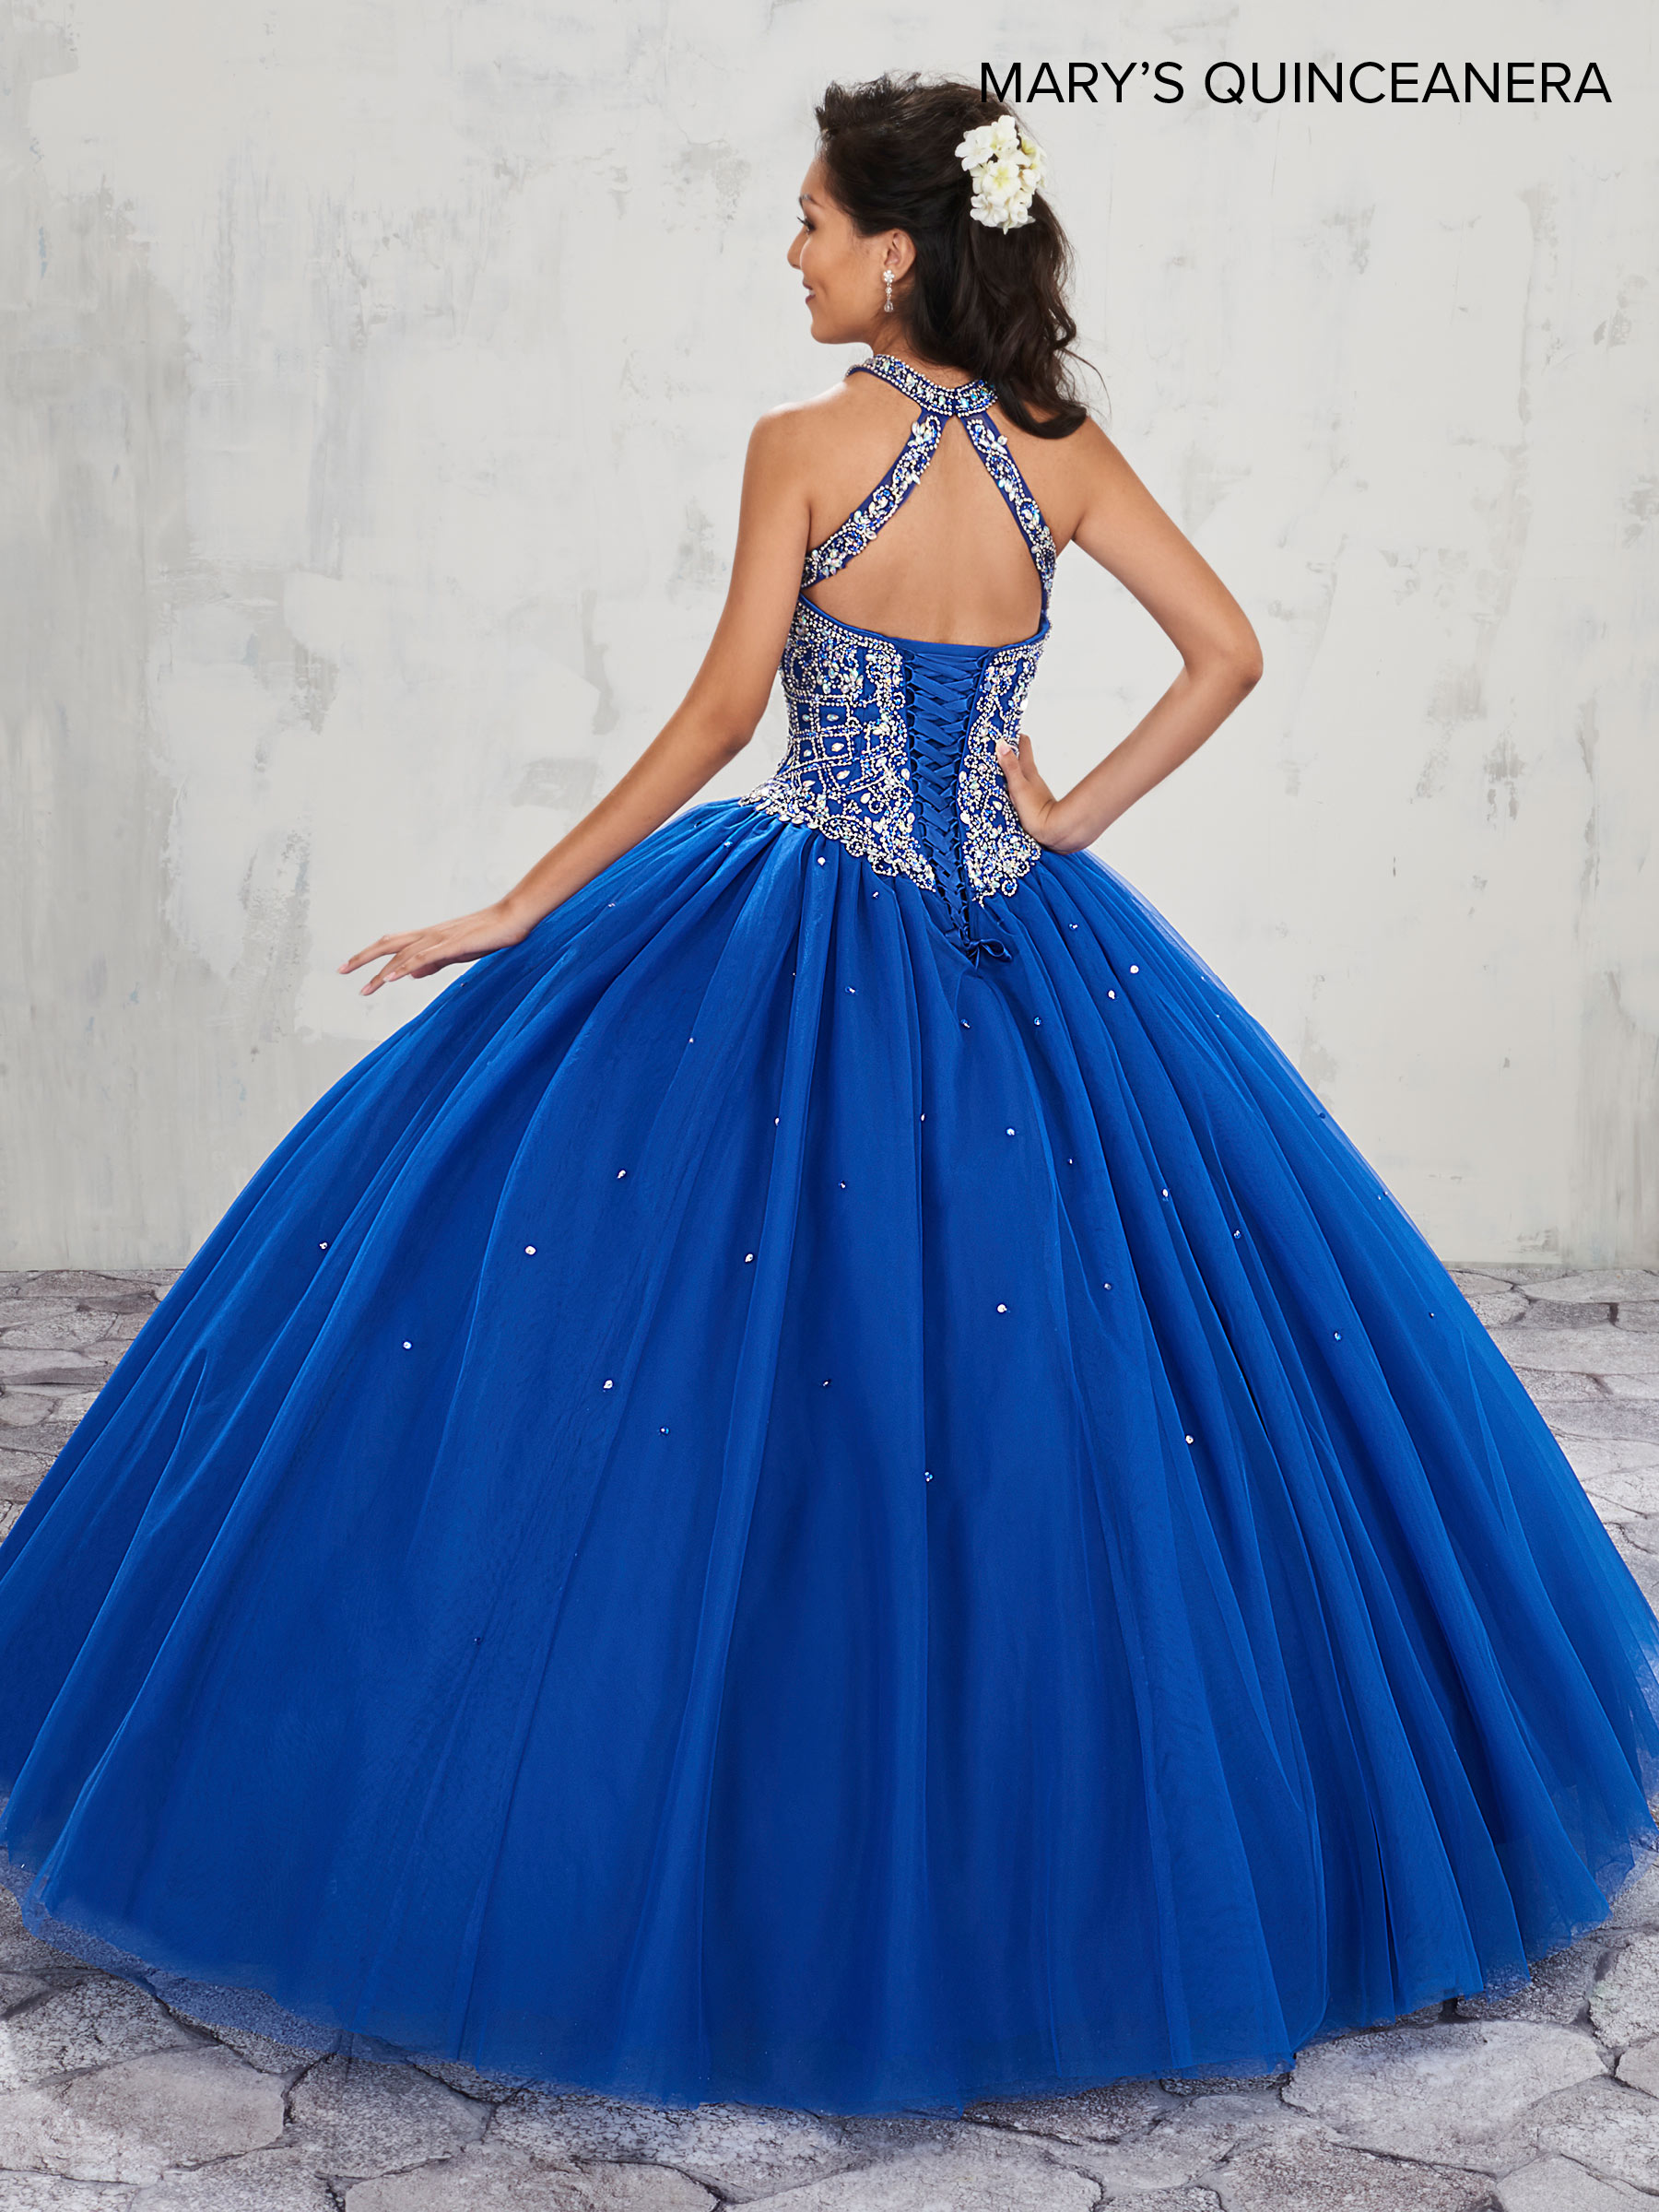 Marys Quinceanera Dresses | Mary's Quinceanera | Style - MQ1002